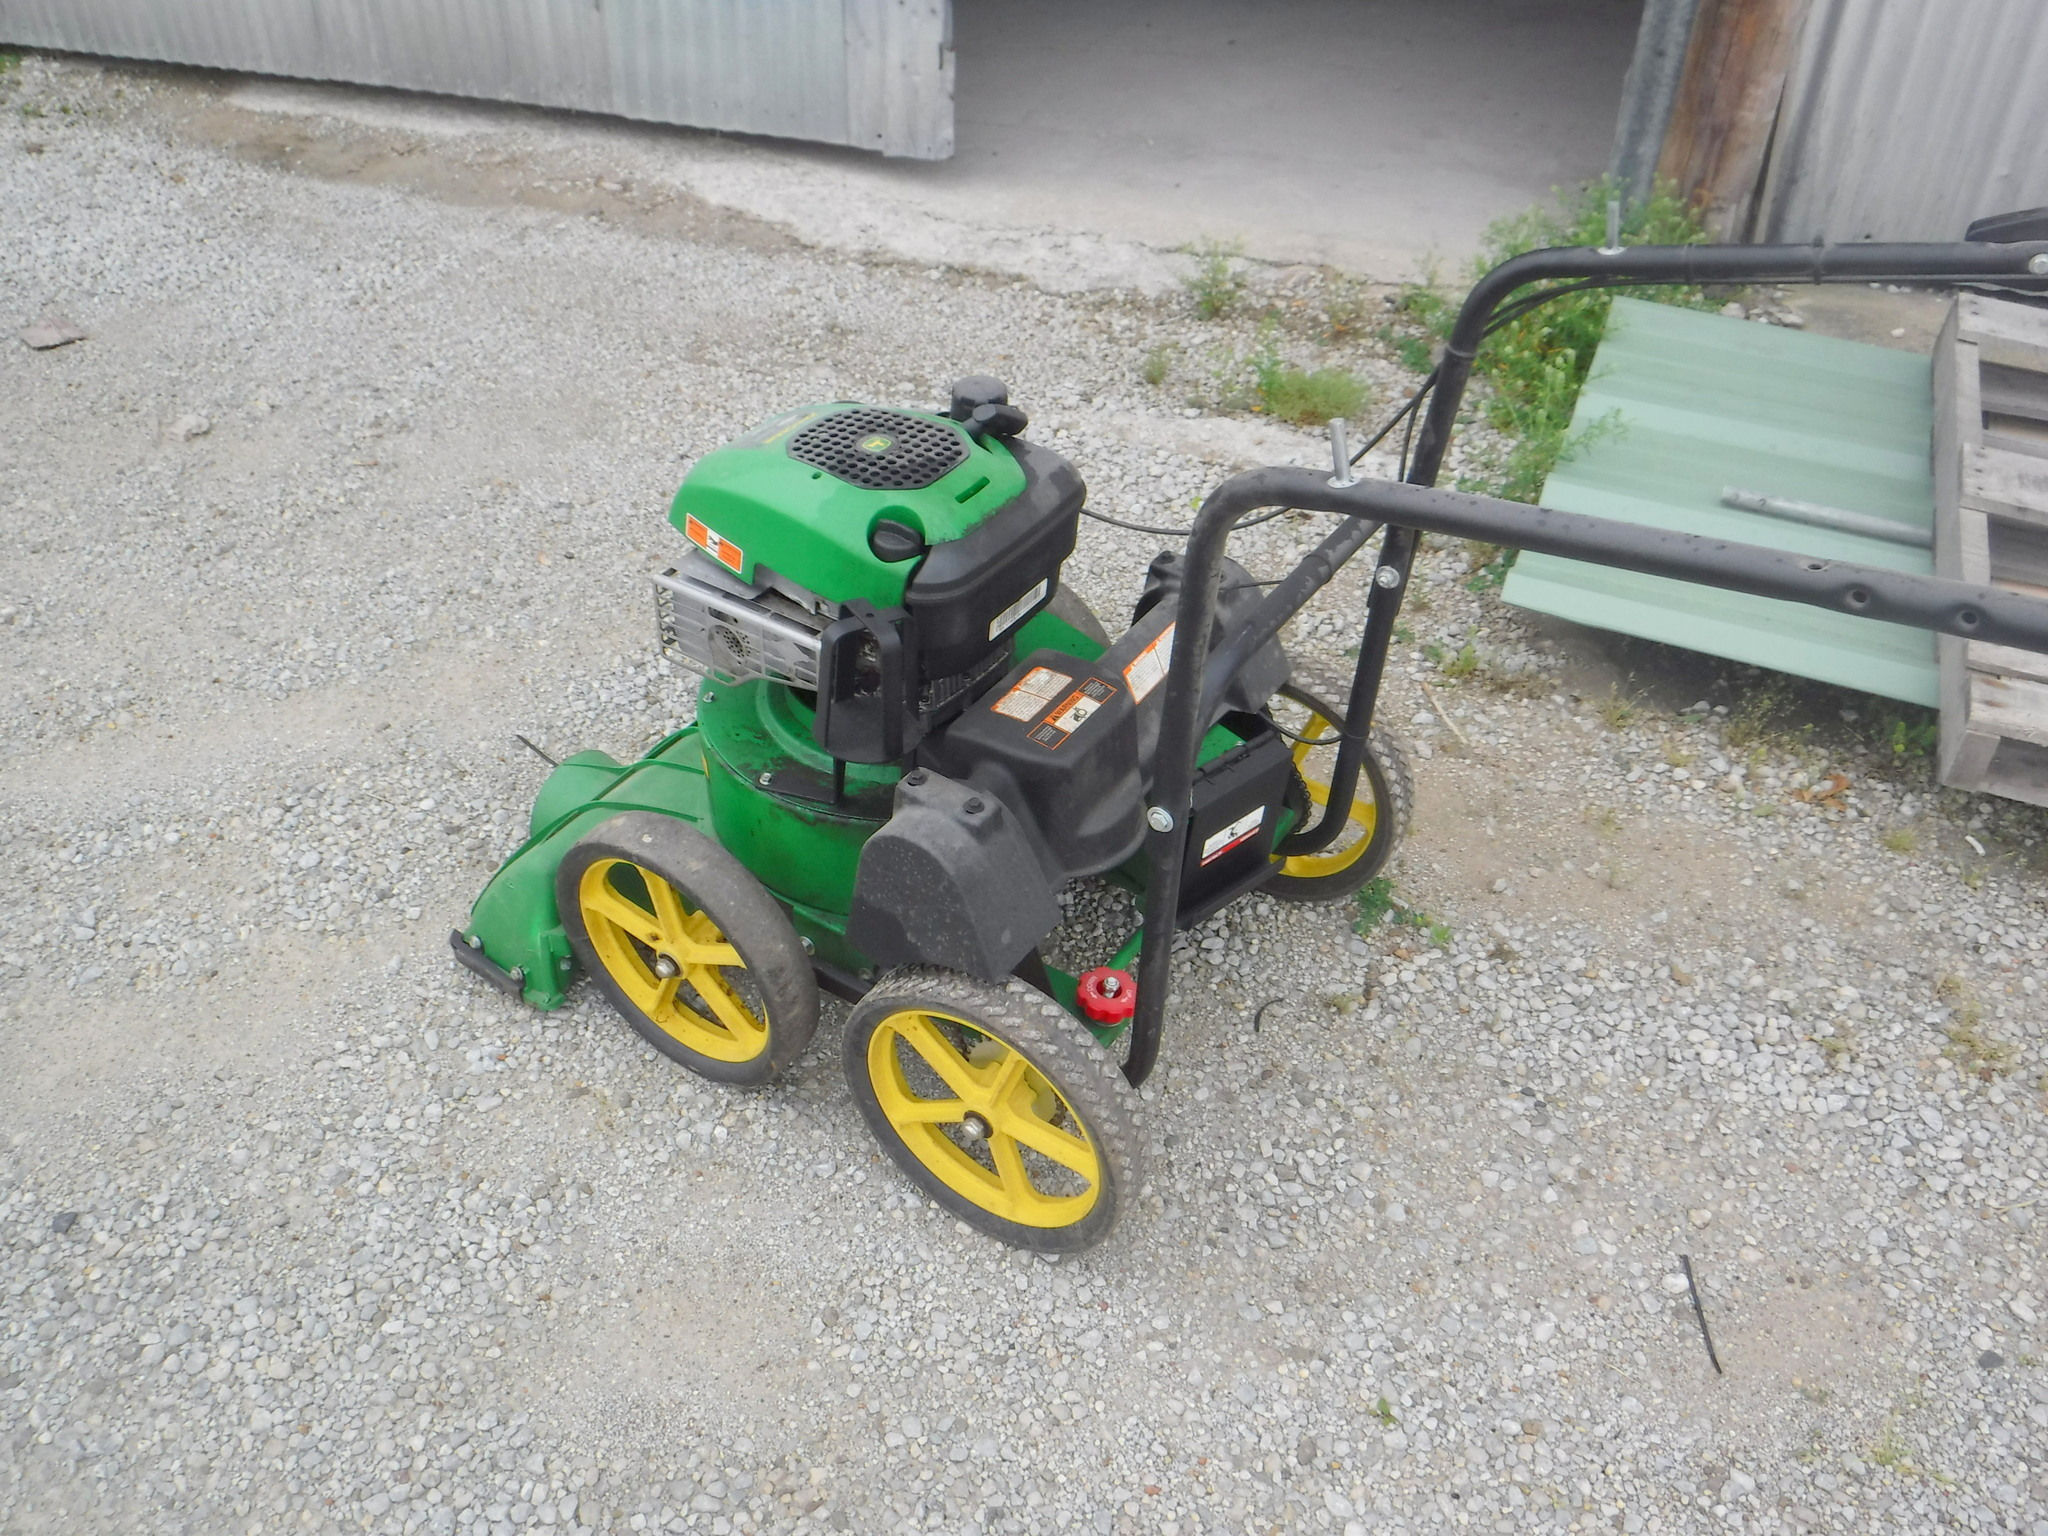 John deere v627sp attachments for lawn garden tractors for Lawn and garden implements